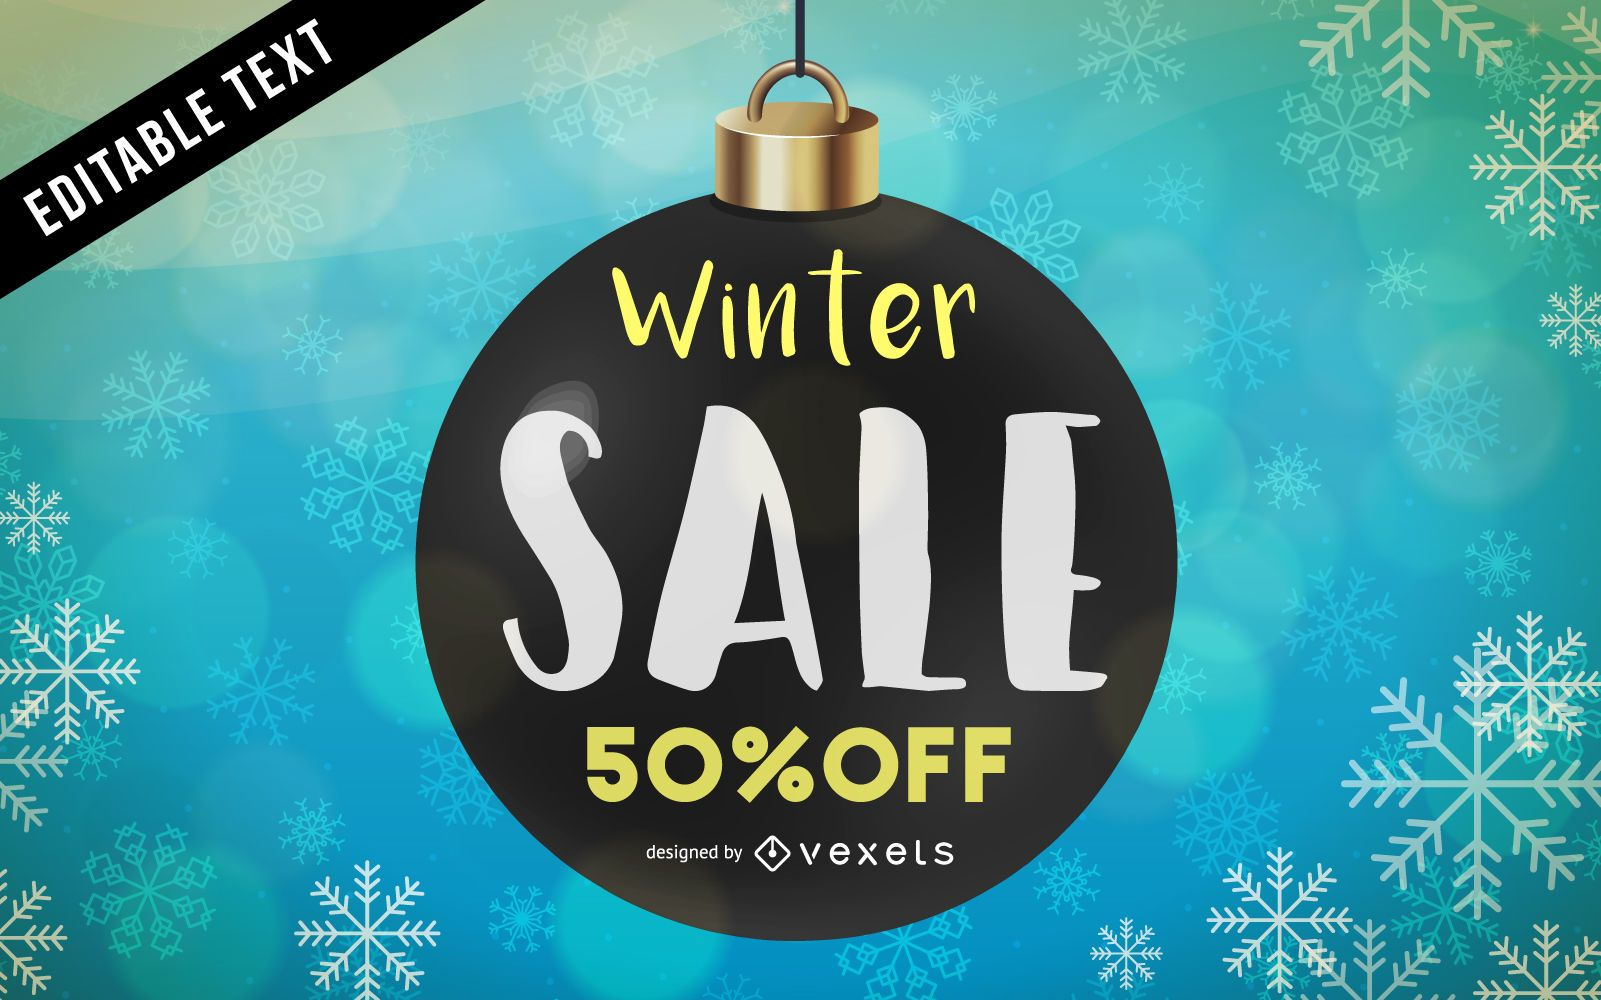 Winter sale with snowflakes poster